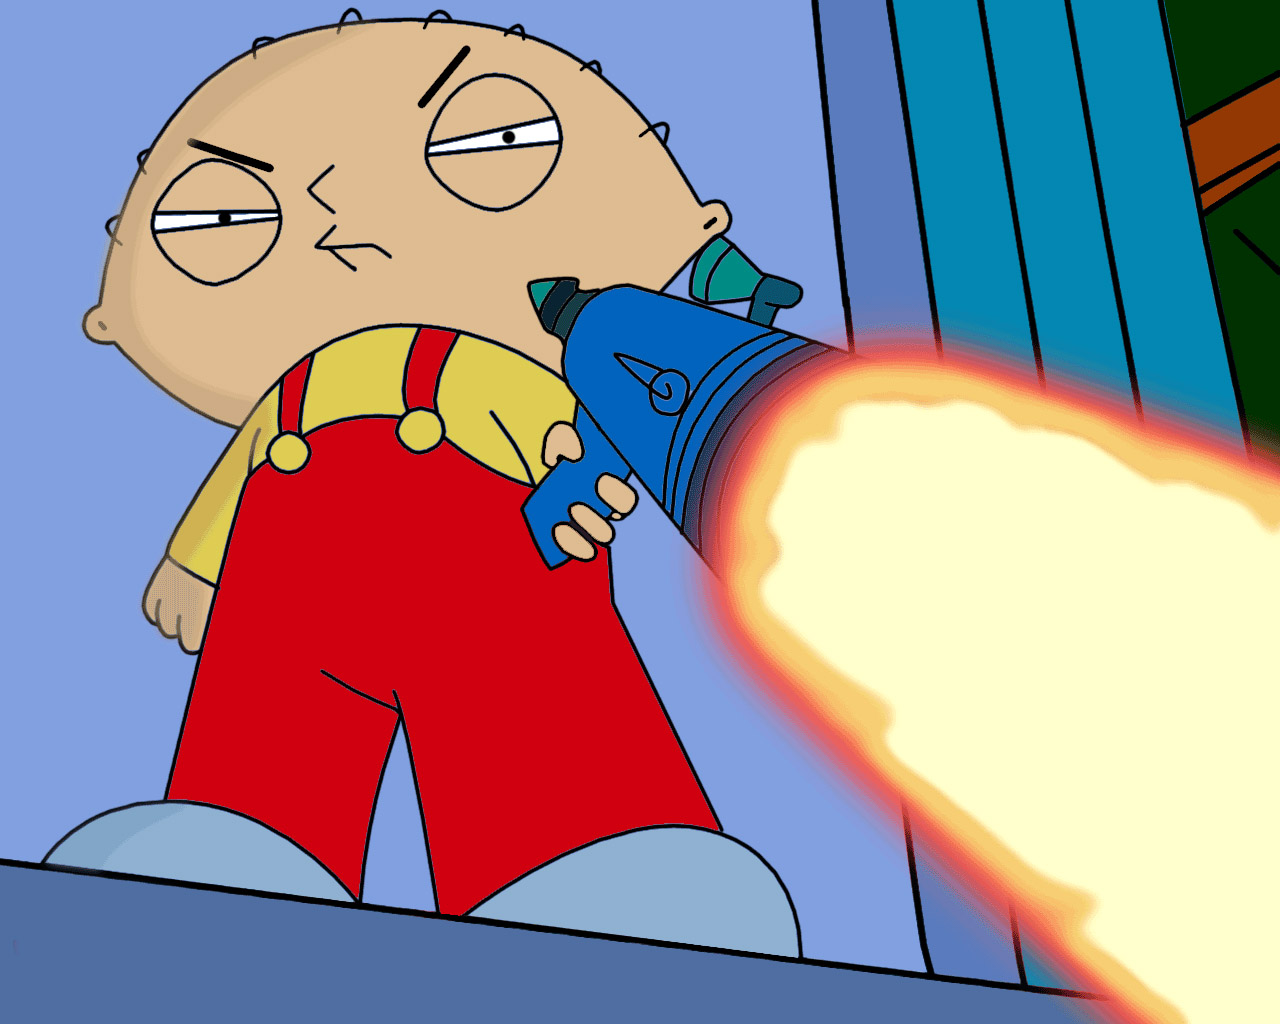 Smart Girl And Boy Wallpaper Stewie Griffin Wallpaper Free Hd Backgrounds Images Pictures